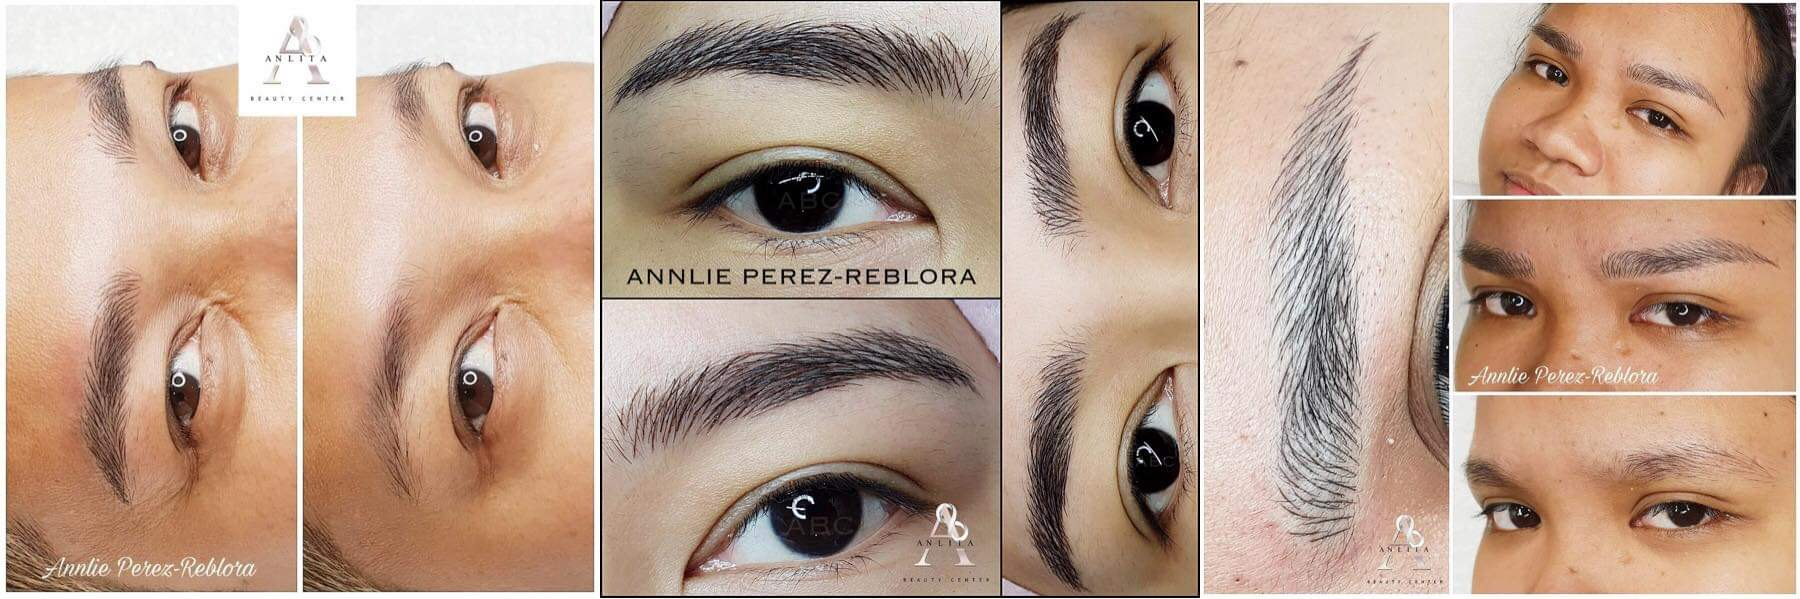 Eyebrow Microblading Services here in the Philippines